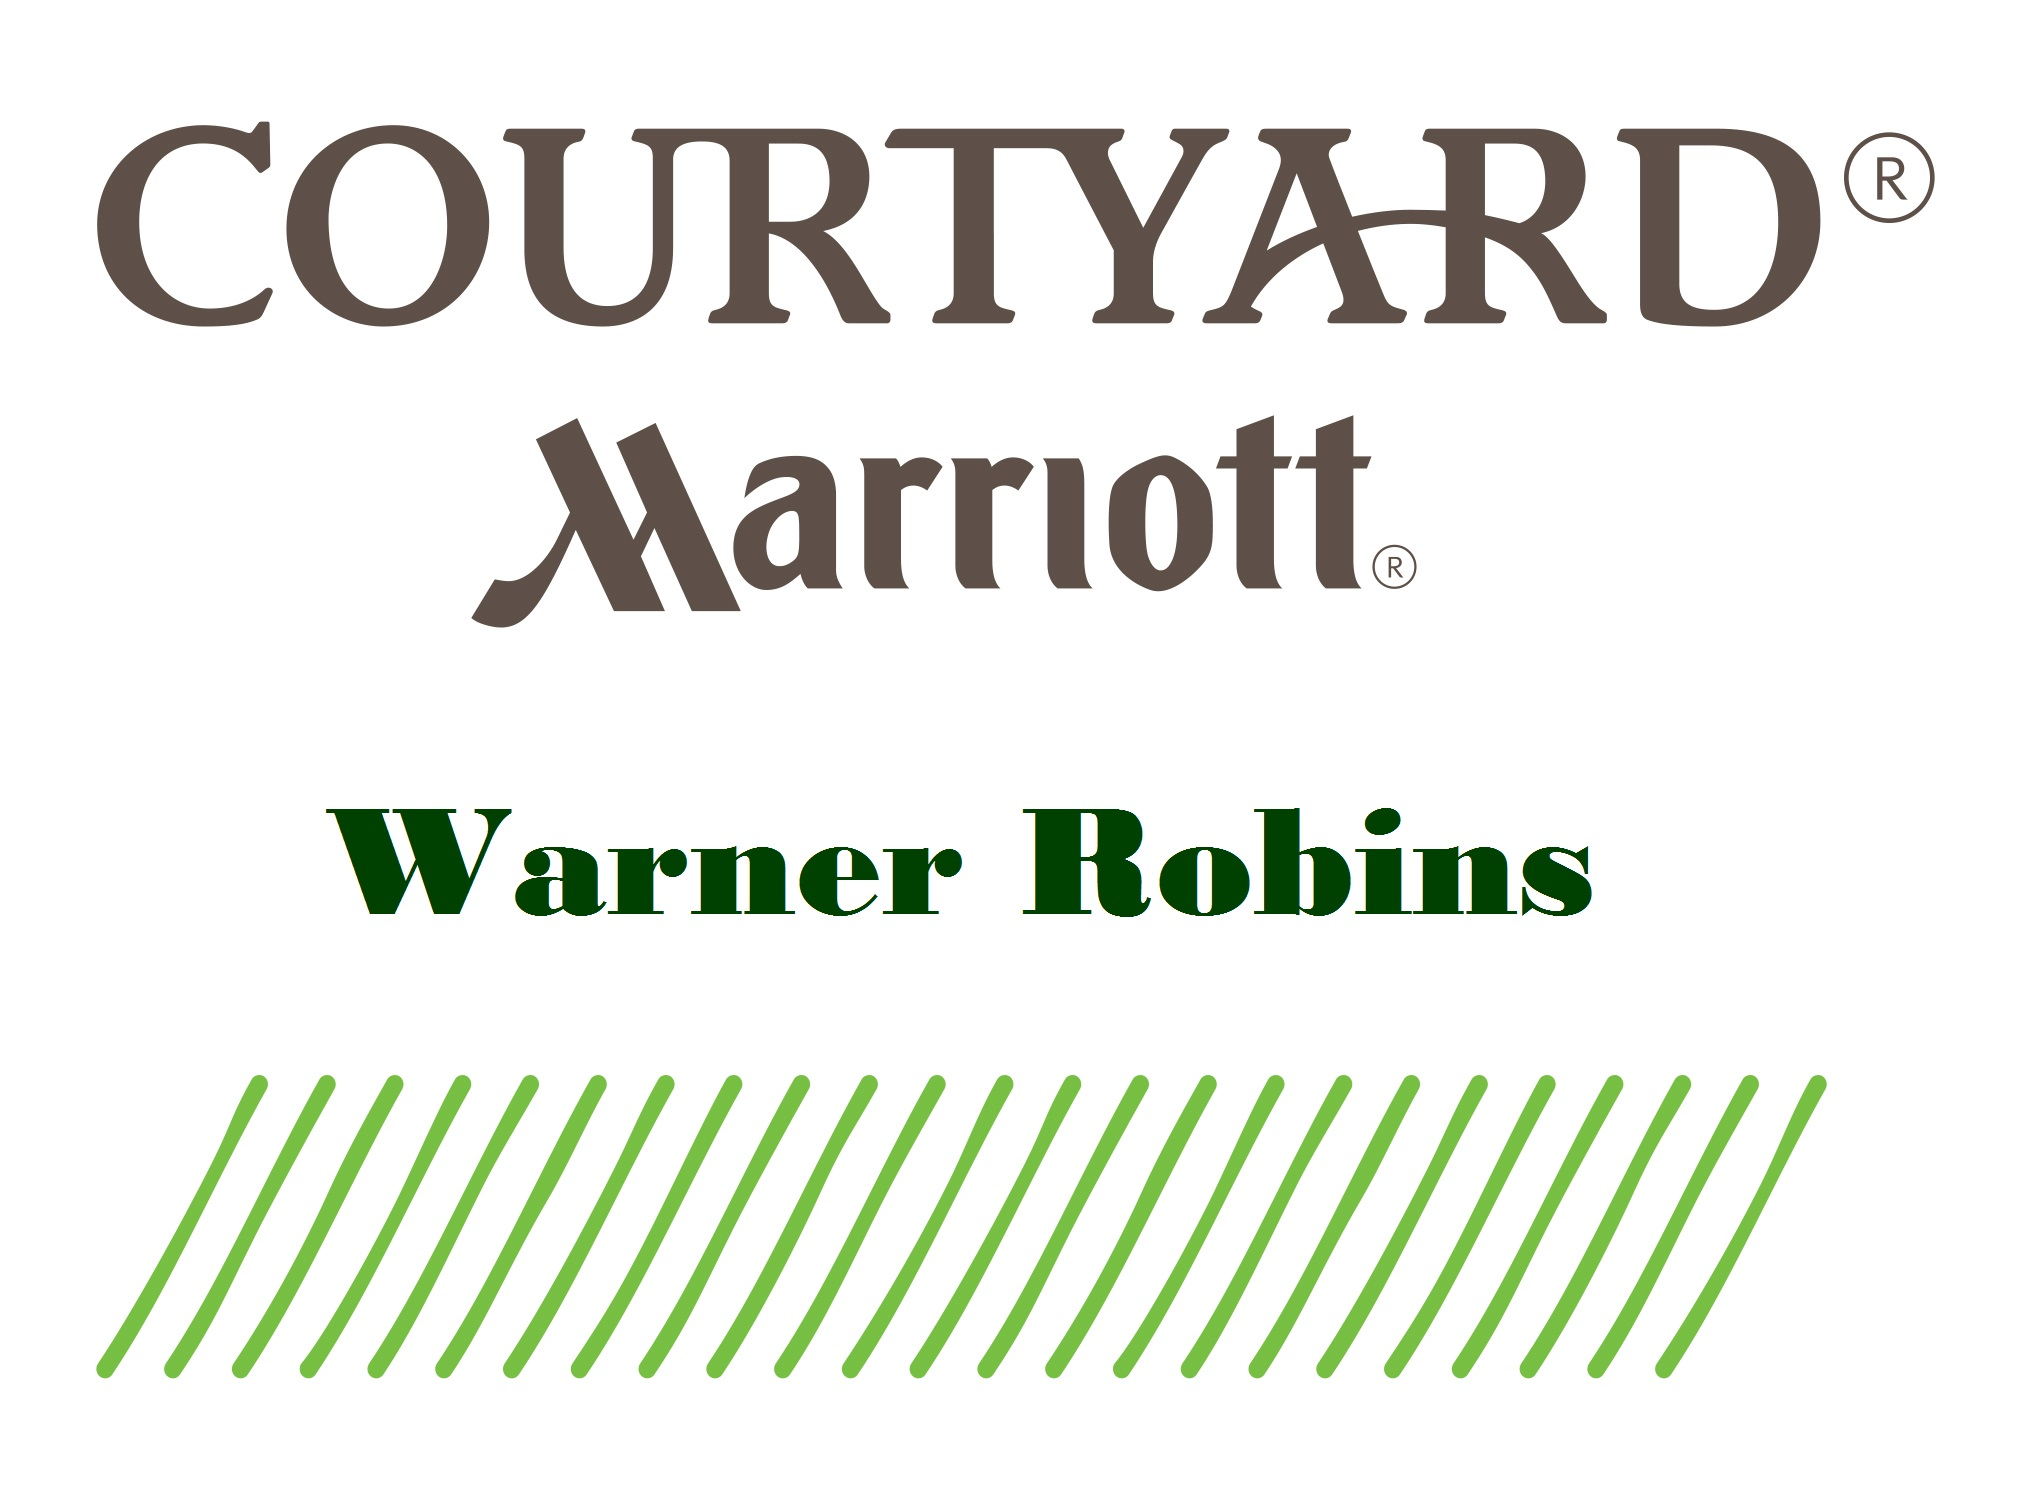 Courtyard Marriott Warner Robins